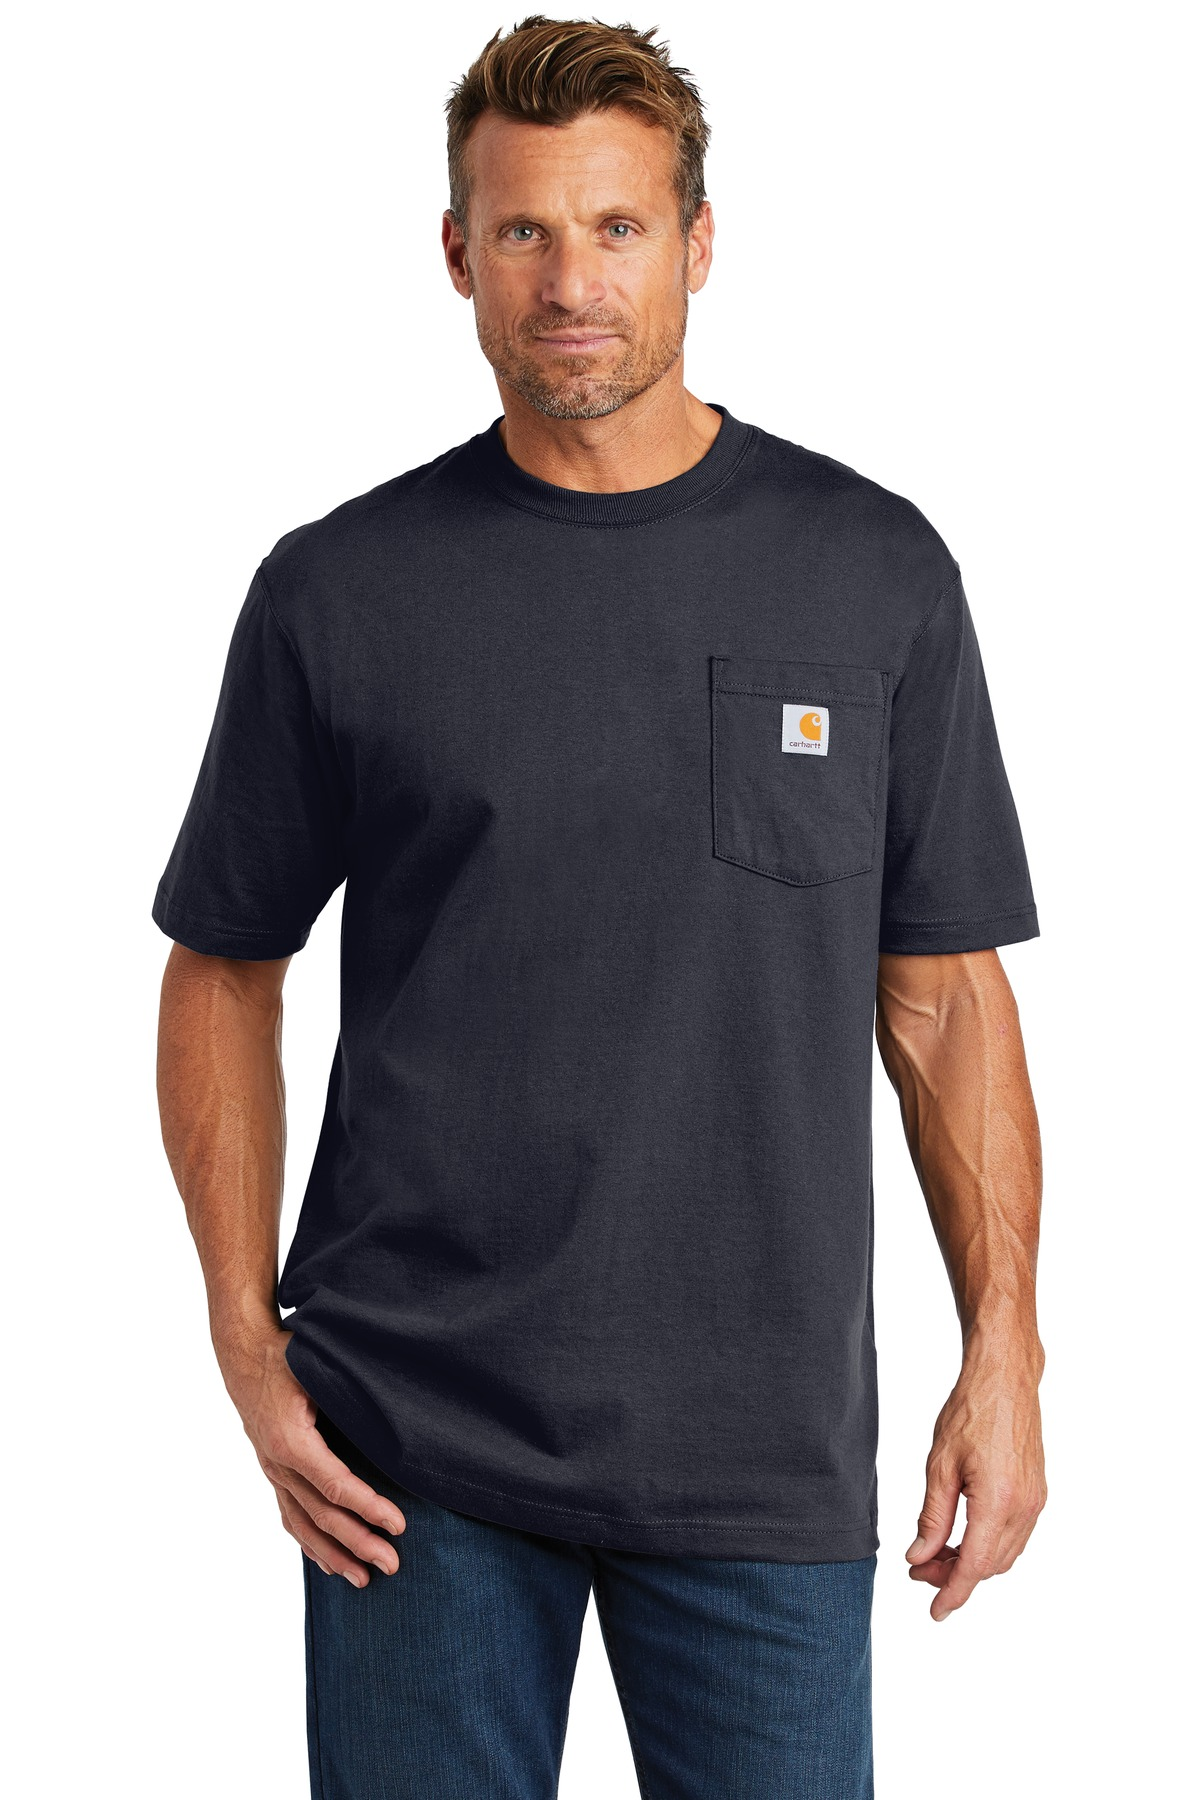 Carhartt  ®  Workwear Pocket Short Sleeve T-Shirt. CTK87 - Navy